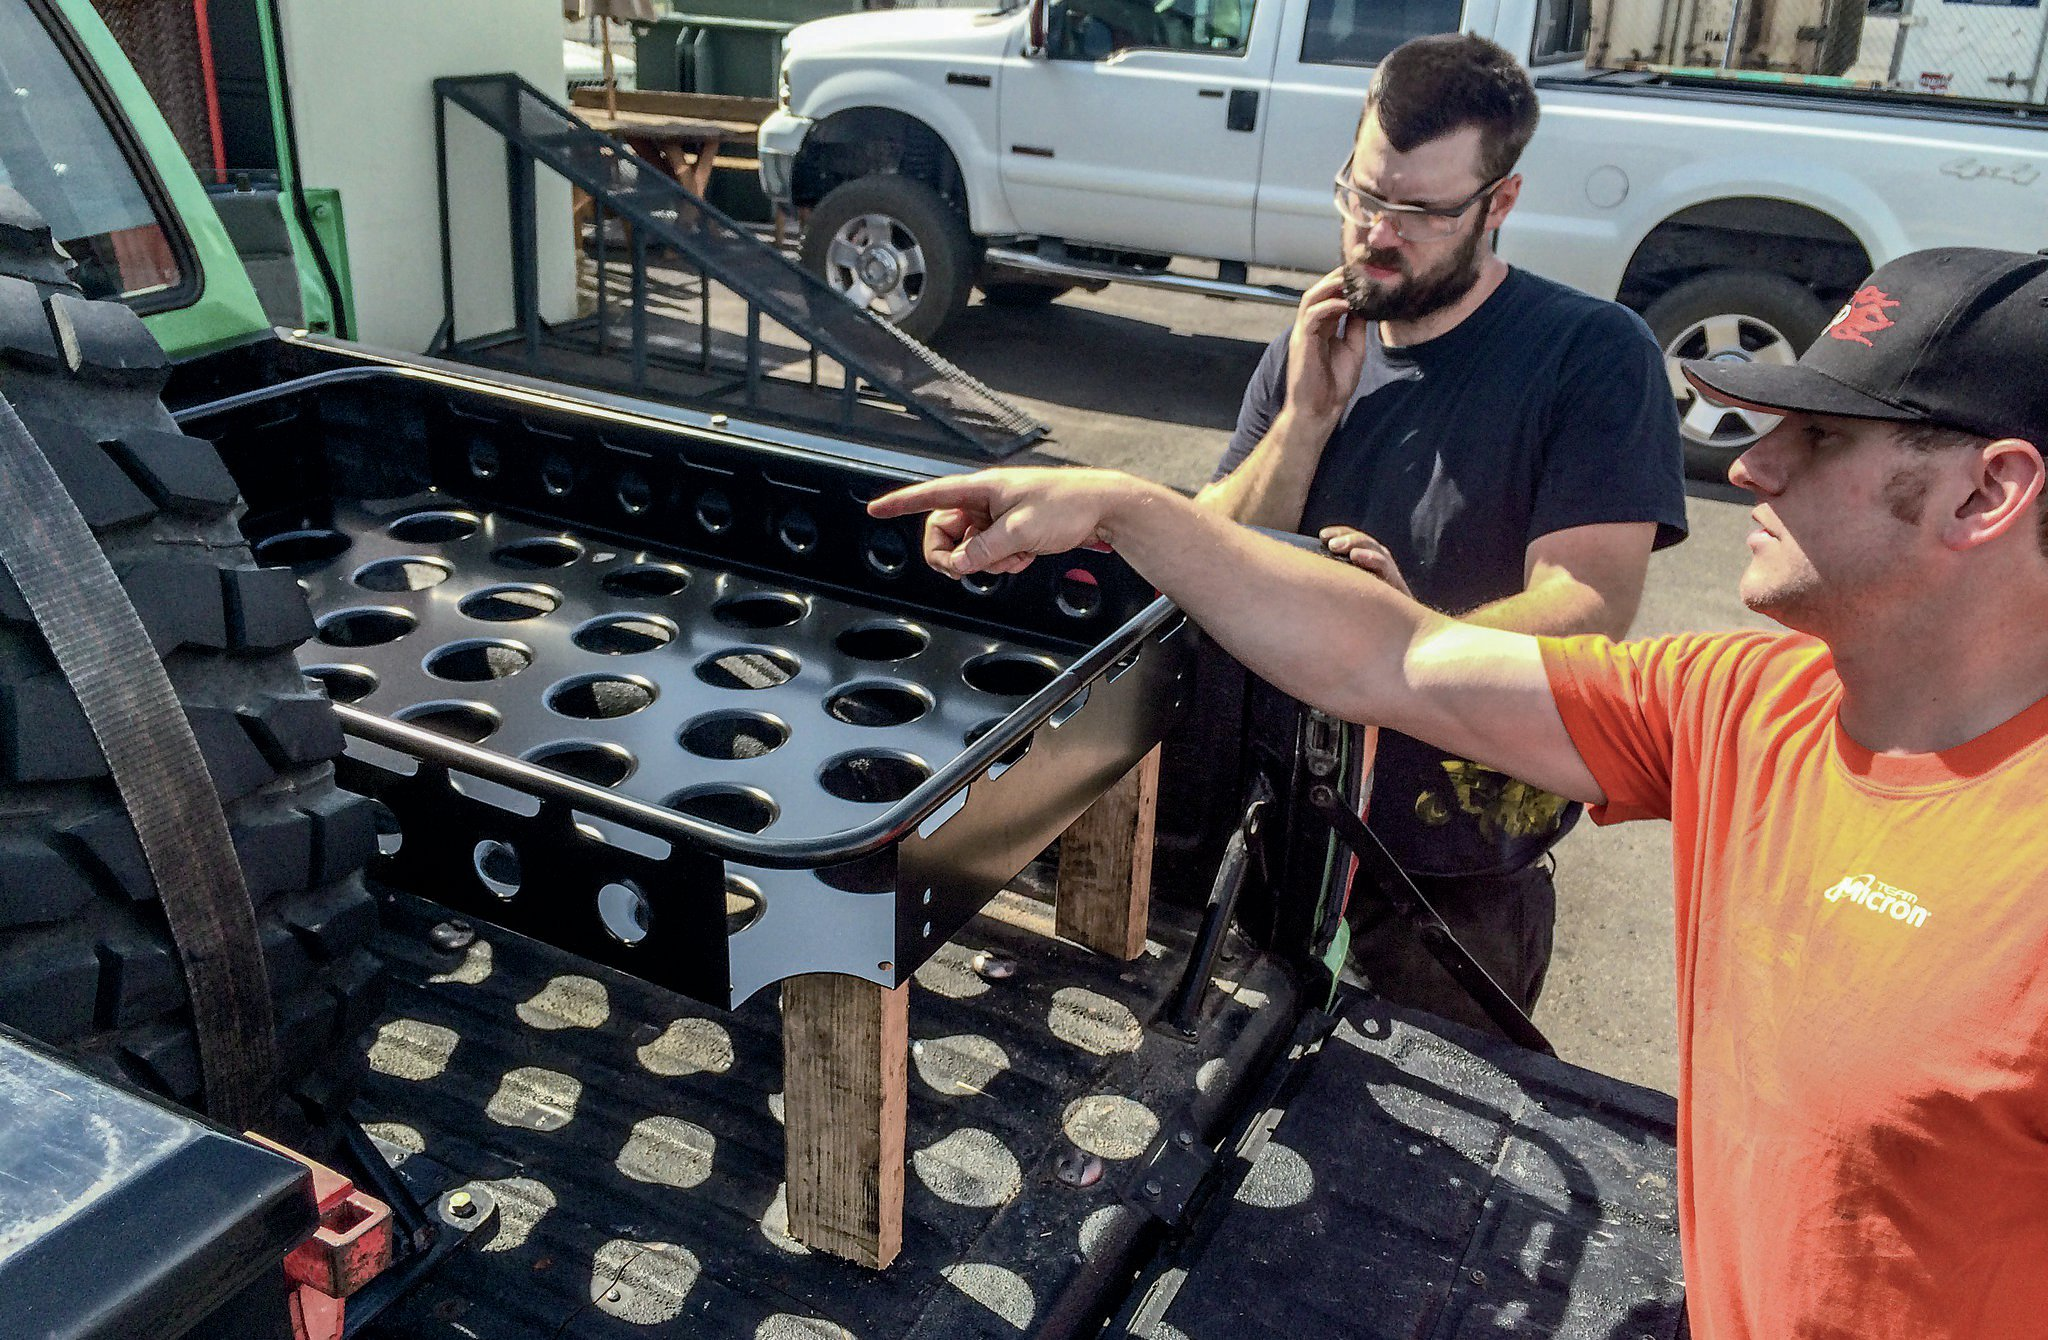 We went to Samco Fabrication and discussed our ideas with Sam Cothrun and Tim Sanders. Originally, our plan was just to have Samco cut and bend sheetmetal legs to connect the Baja Basket to the floor of our pickup.